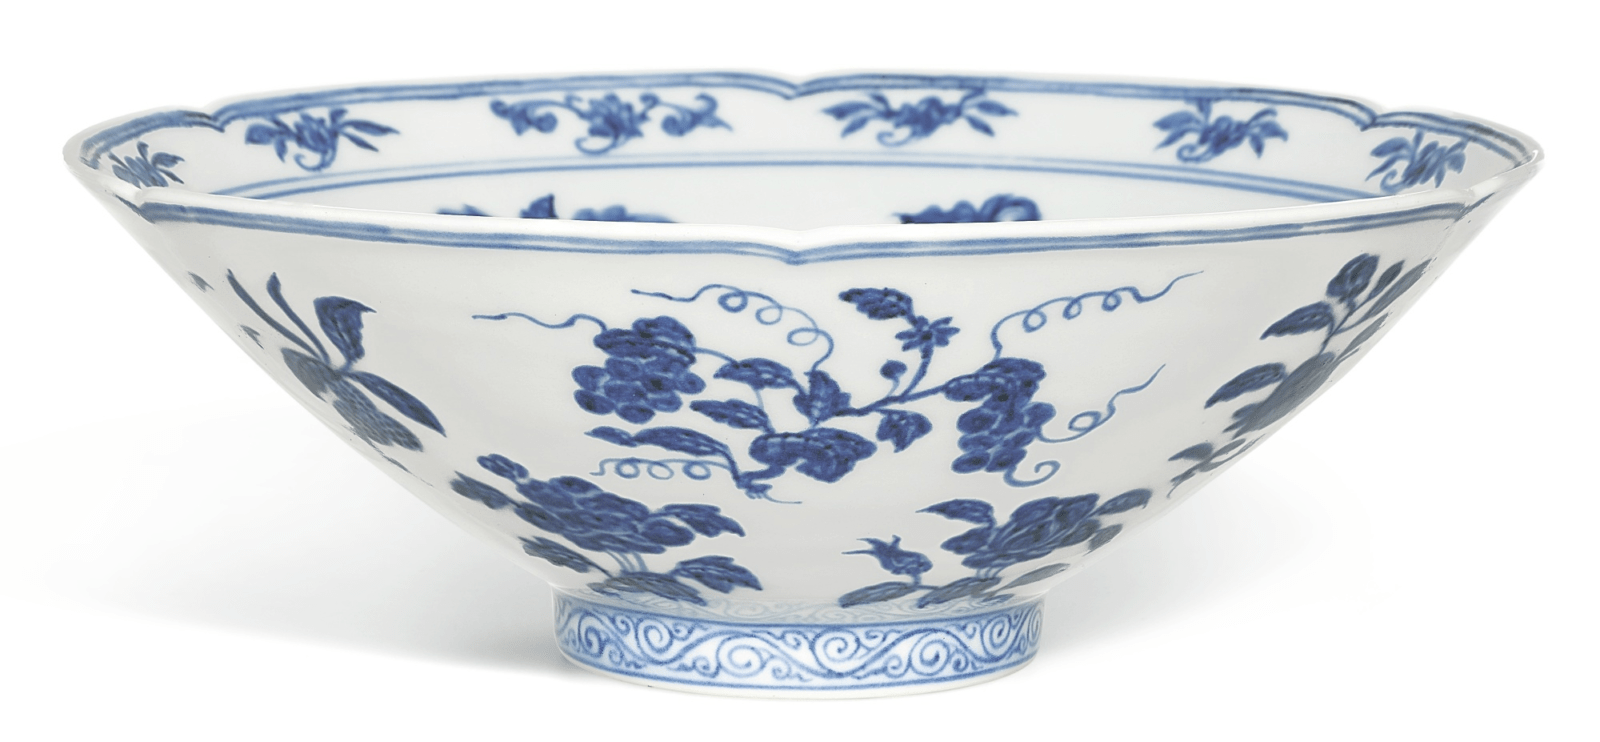 Freeman's Asian Arts Auction: Chinese imperial porcelains